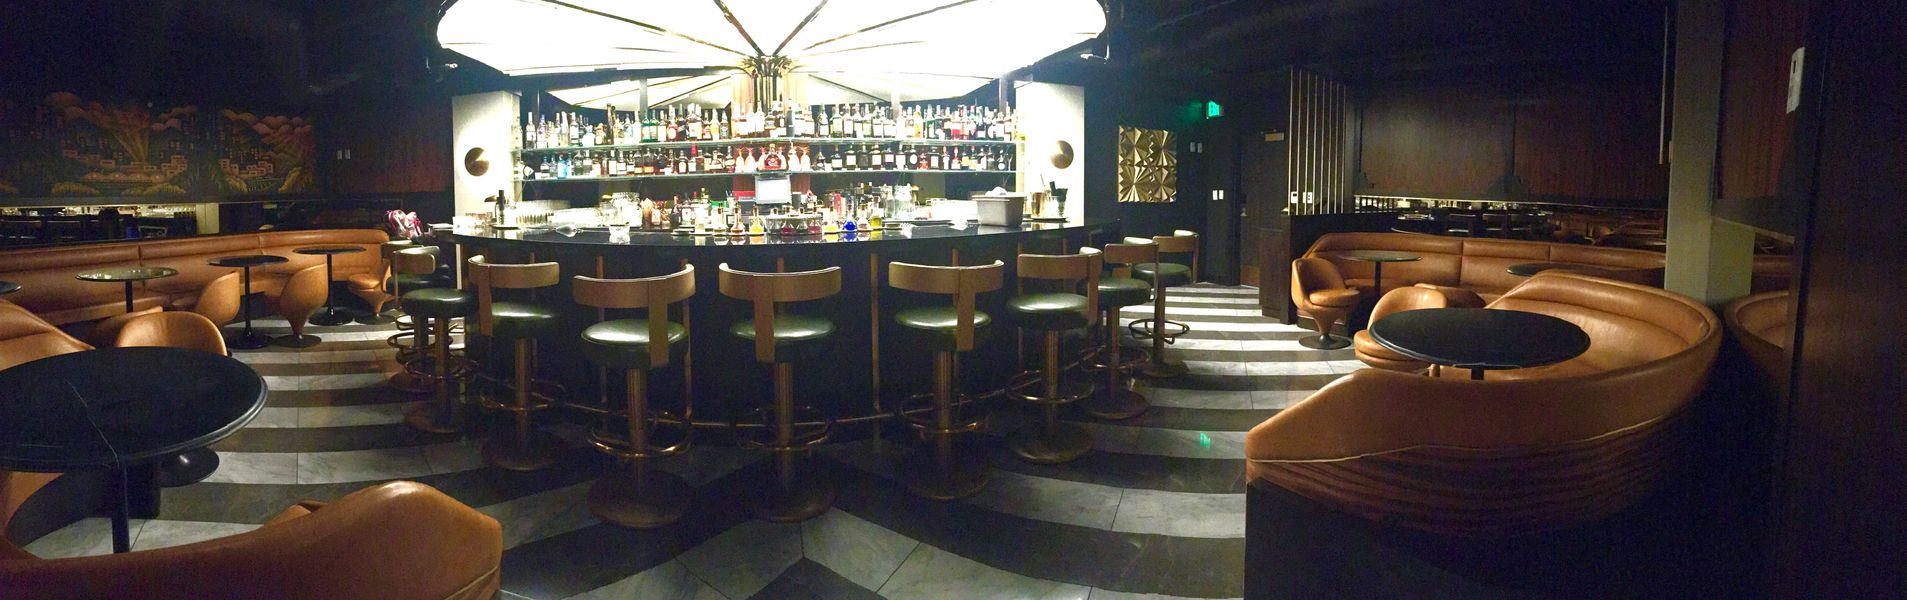 The Most Secret And Exclusive Speakeasy Opened In Cherry